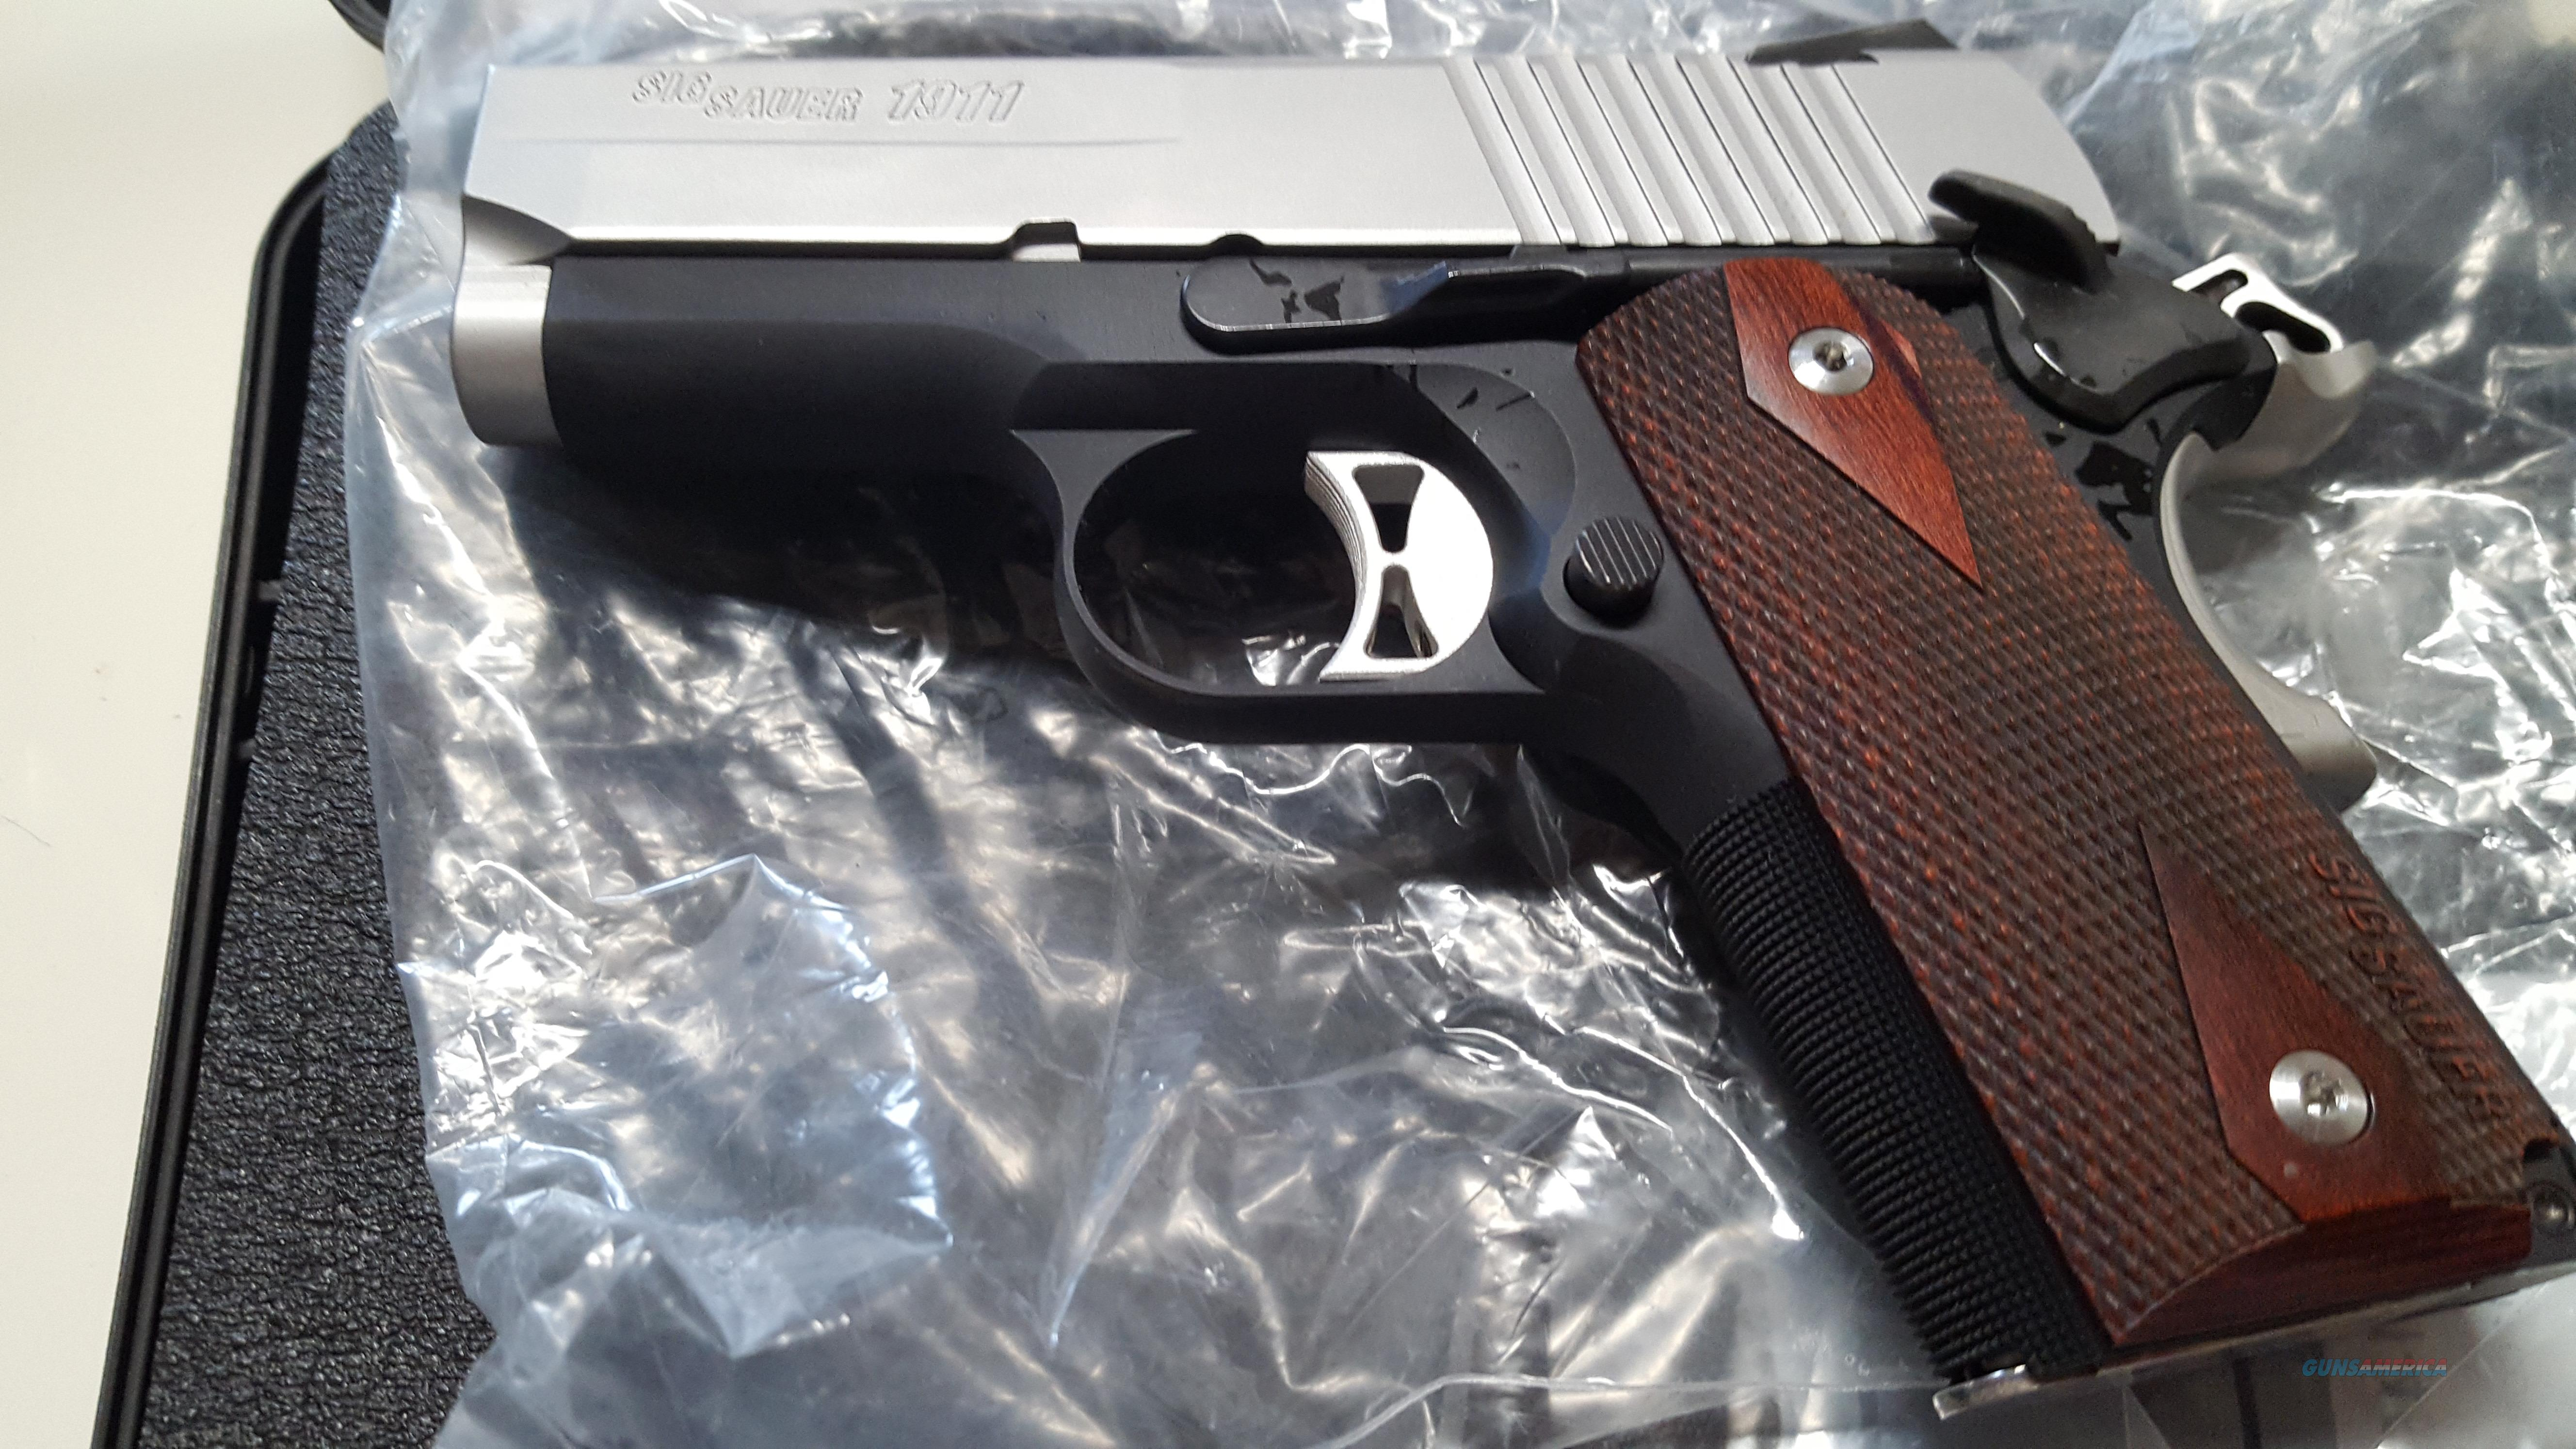 Sig Sauer 1911 Ultra Compact .45ACP (brand new)  Guns > Pistols > Sig - Sauer/Sigarms Pistols > 1911